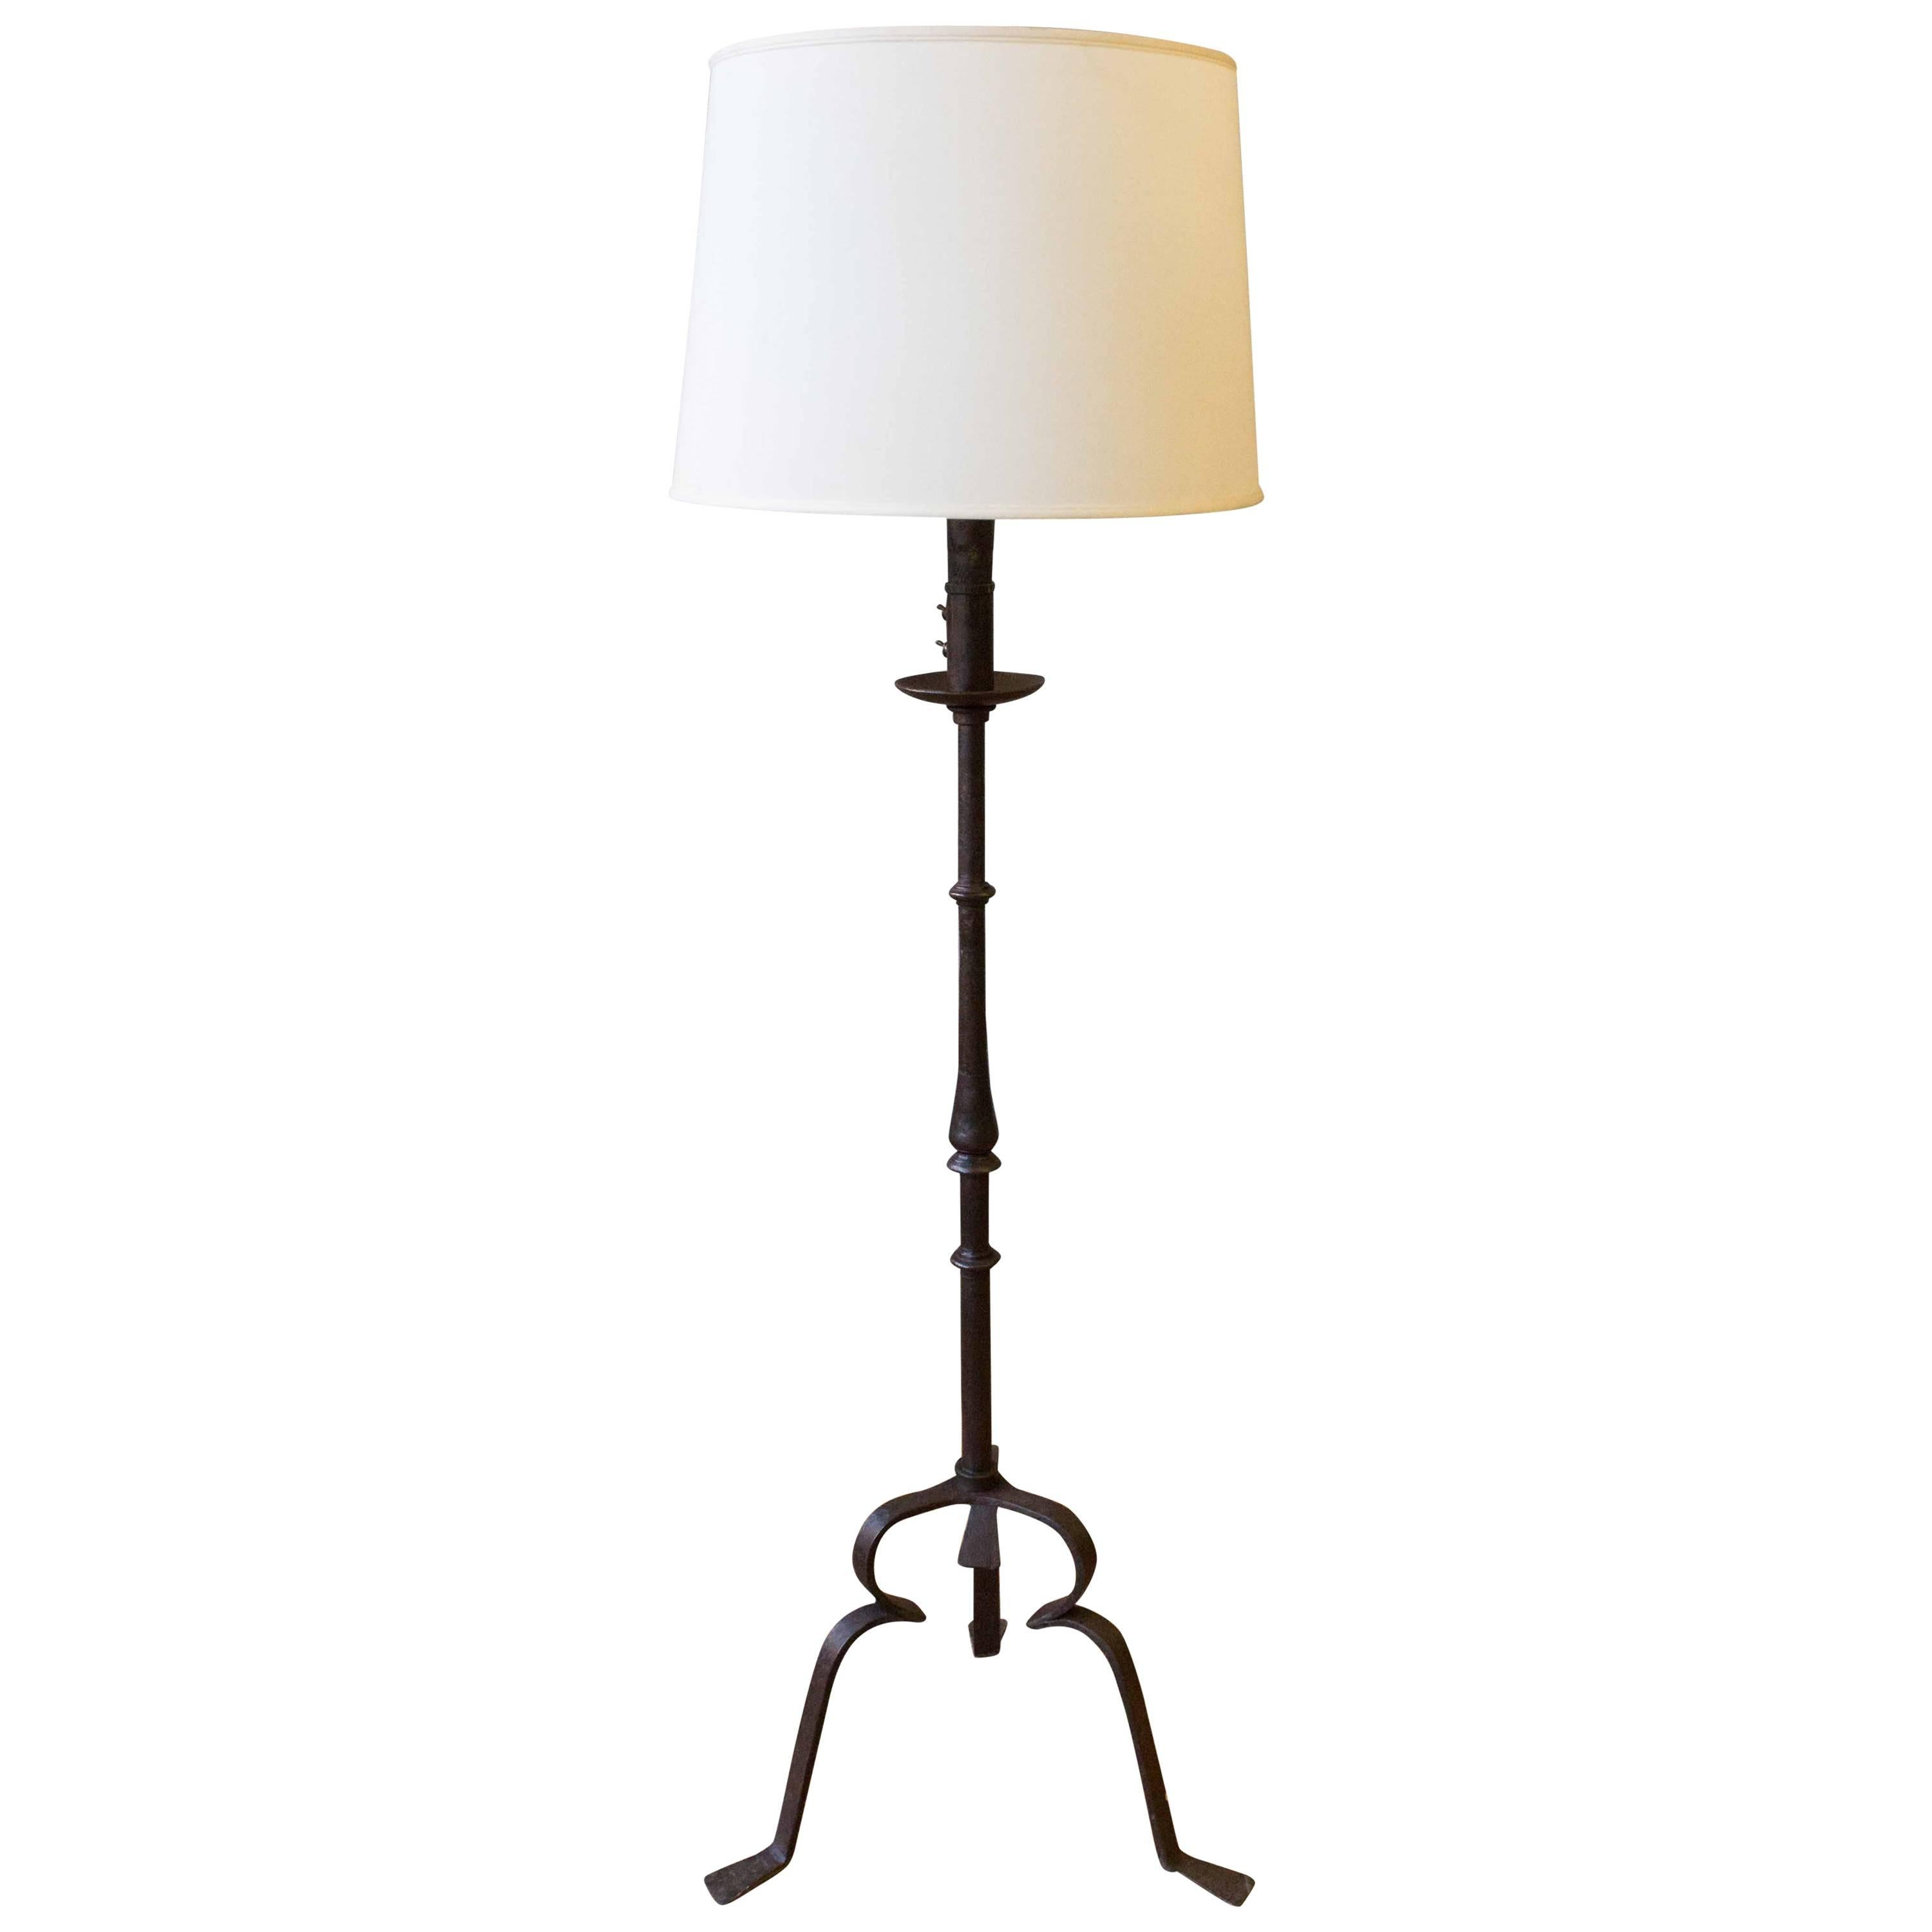 Spanish Wrought Iron Floor Lamp with a Tripod Base